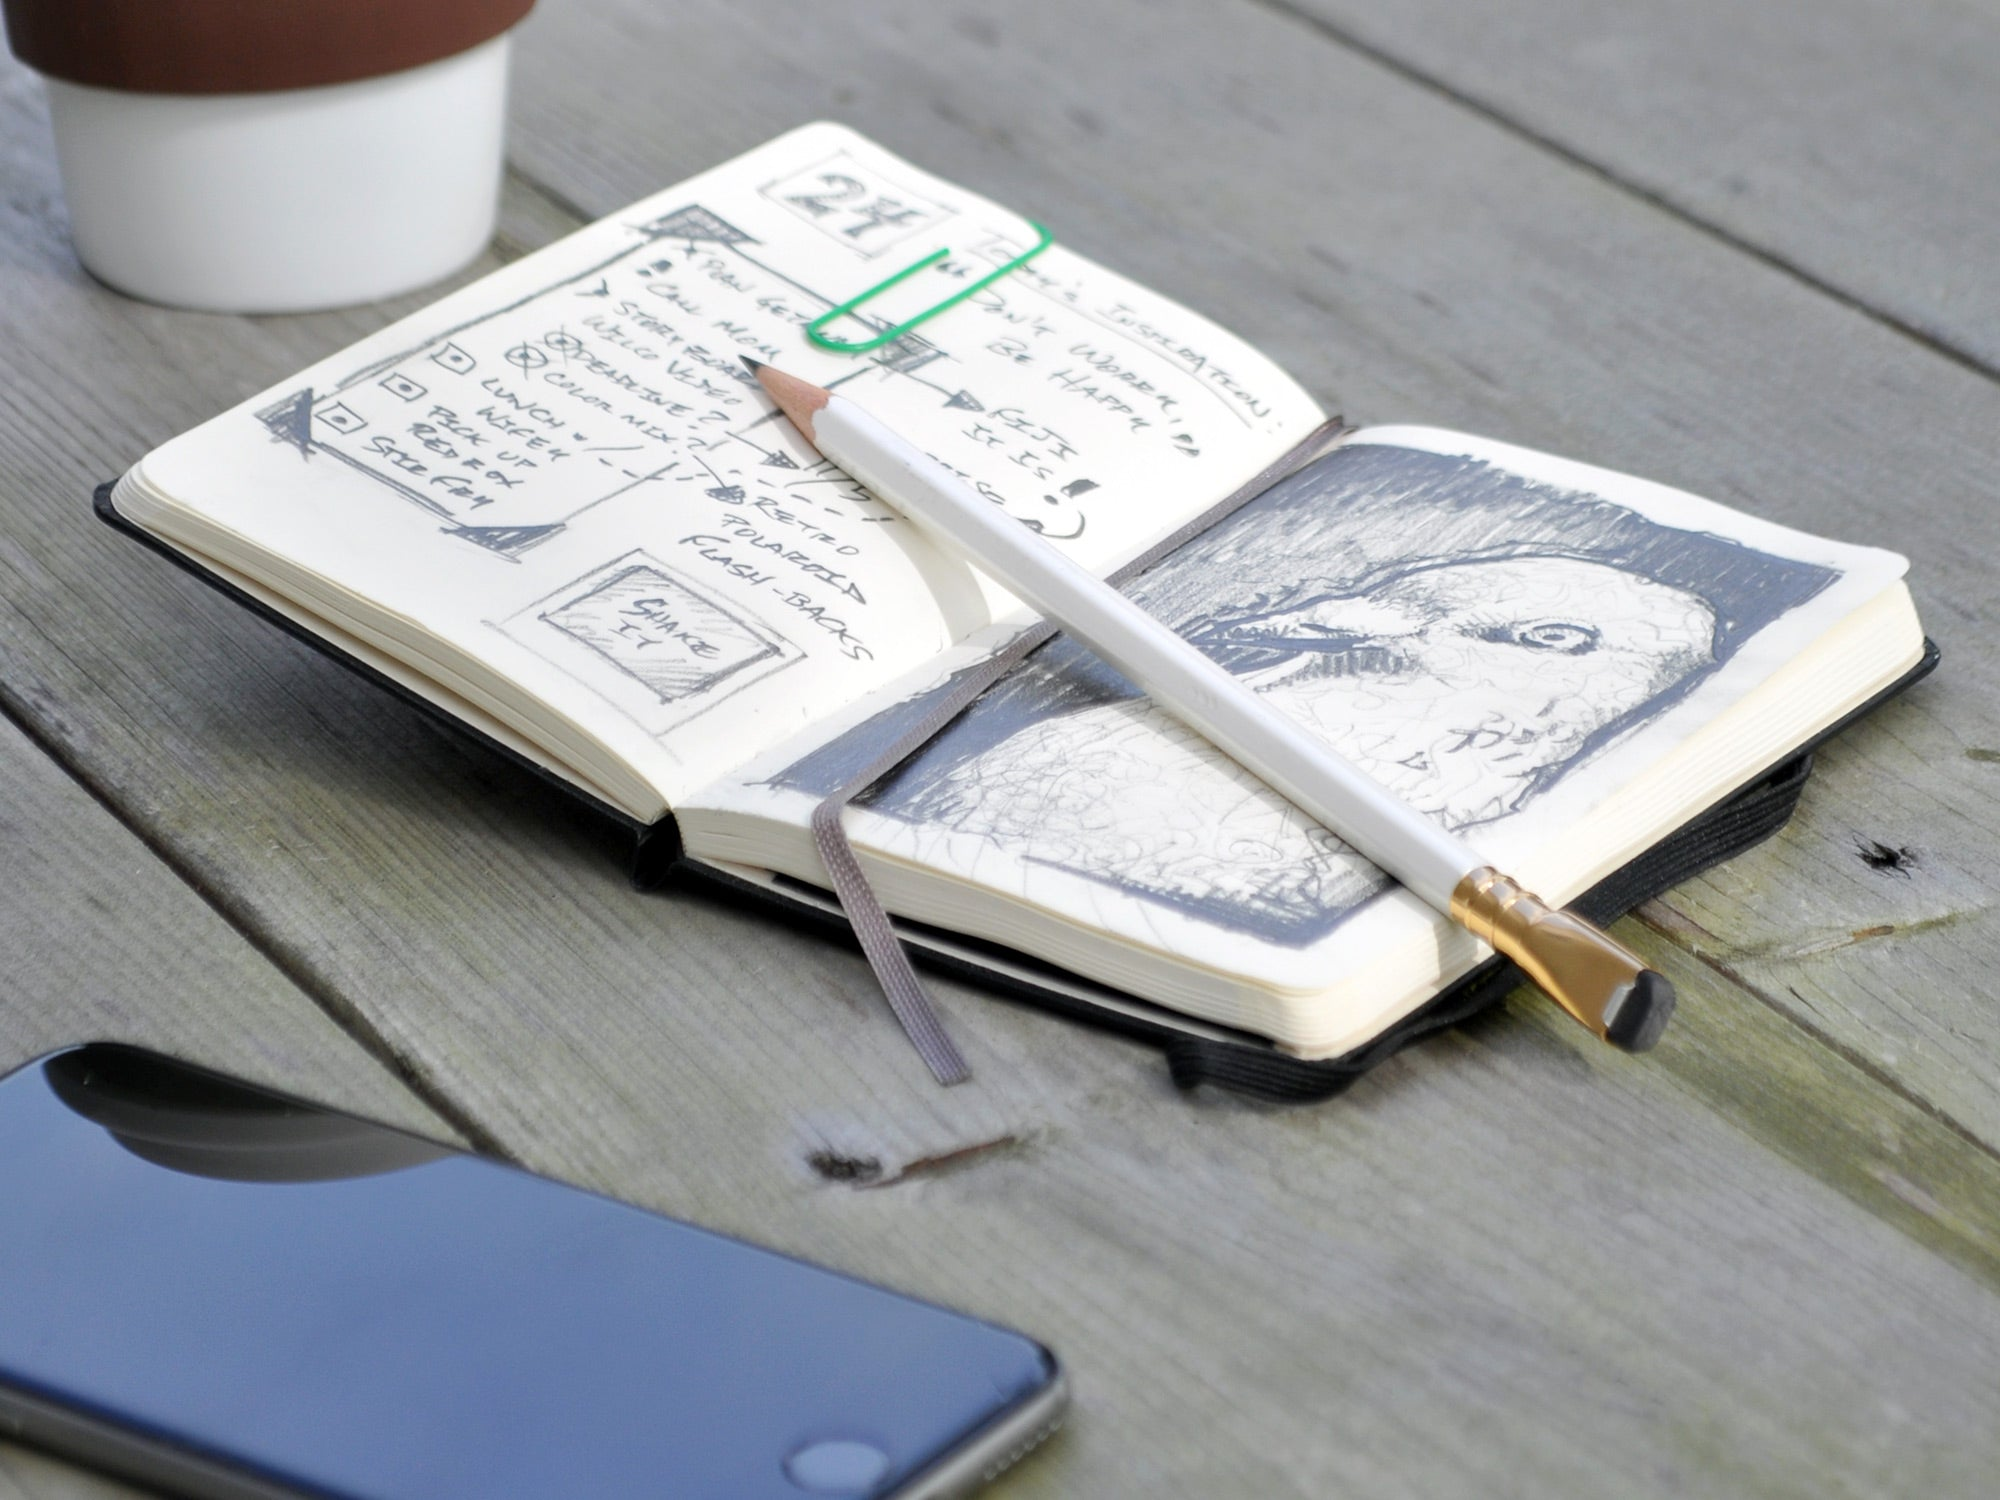 The Power of the Pocket – Five BIG Reasons to Keep A Pocket-Size Notebook